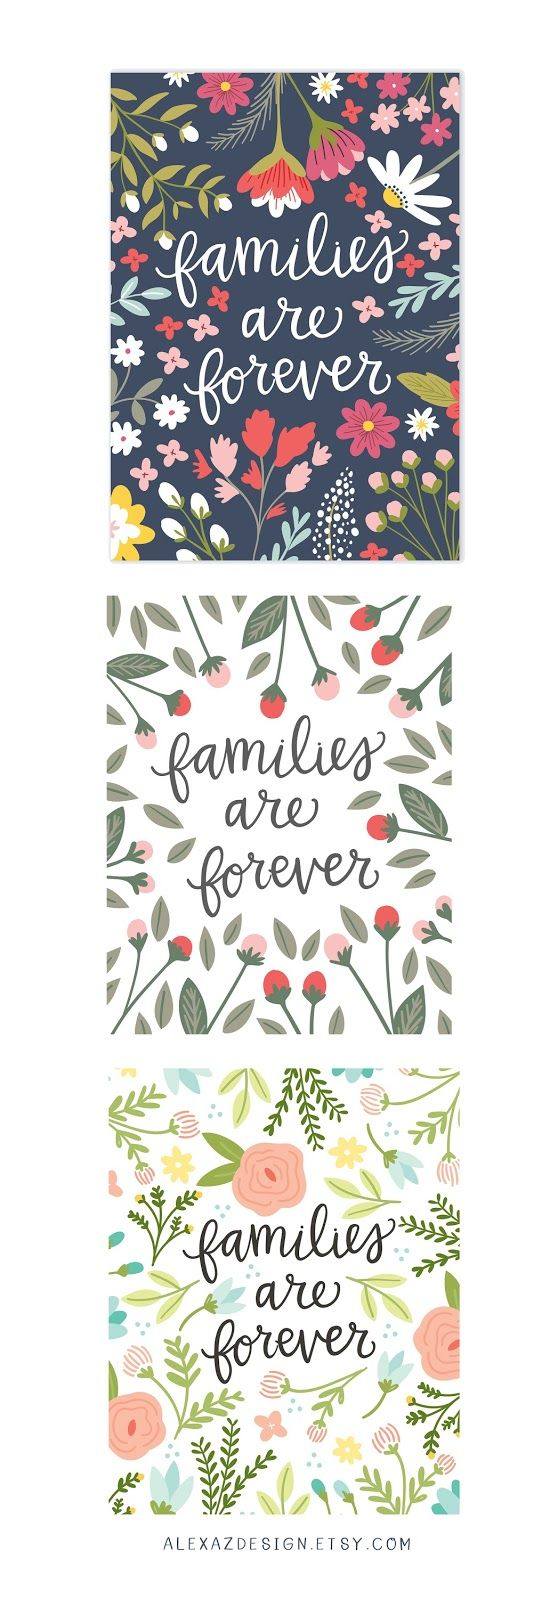 families are forever prints from alexazdesign